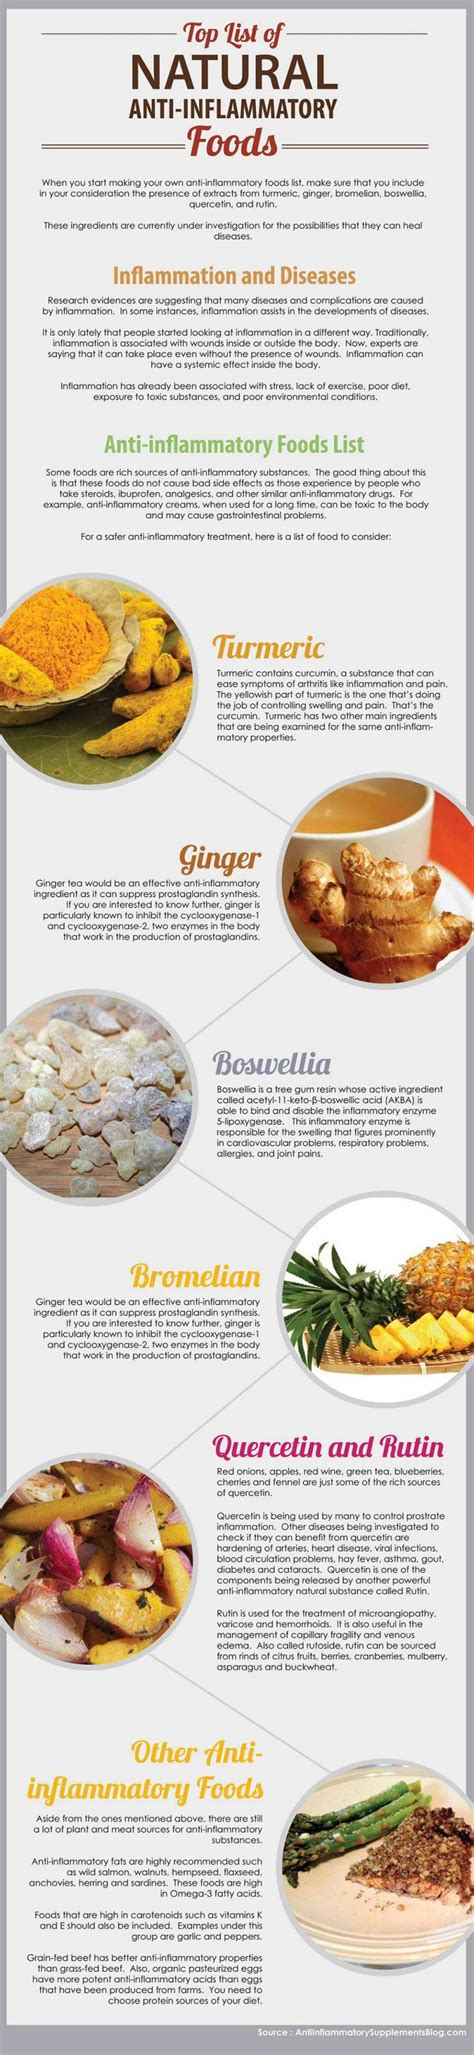 17 best images about anti inflammatory diet on foundation anti inflammatory diet